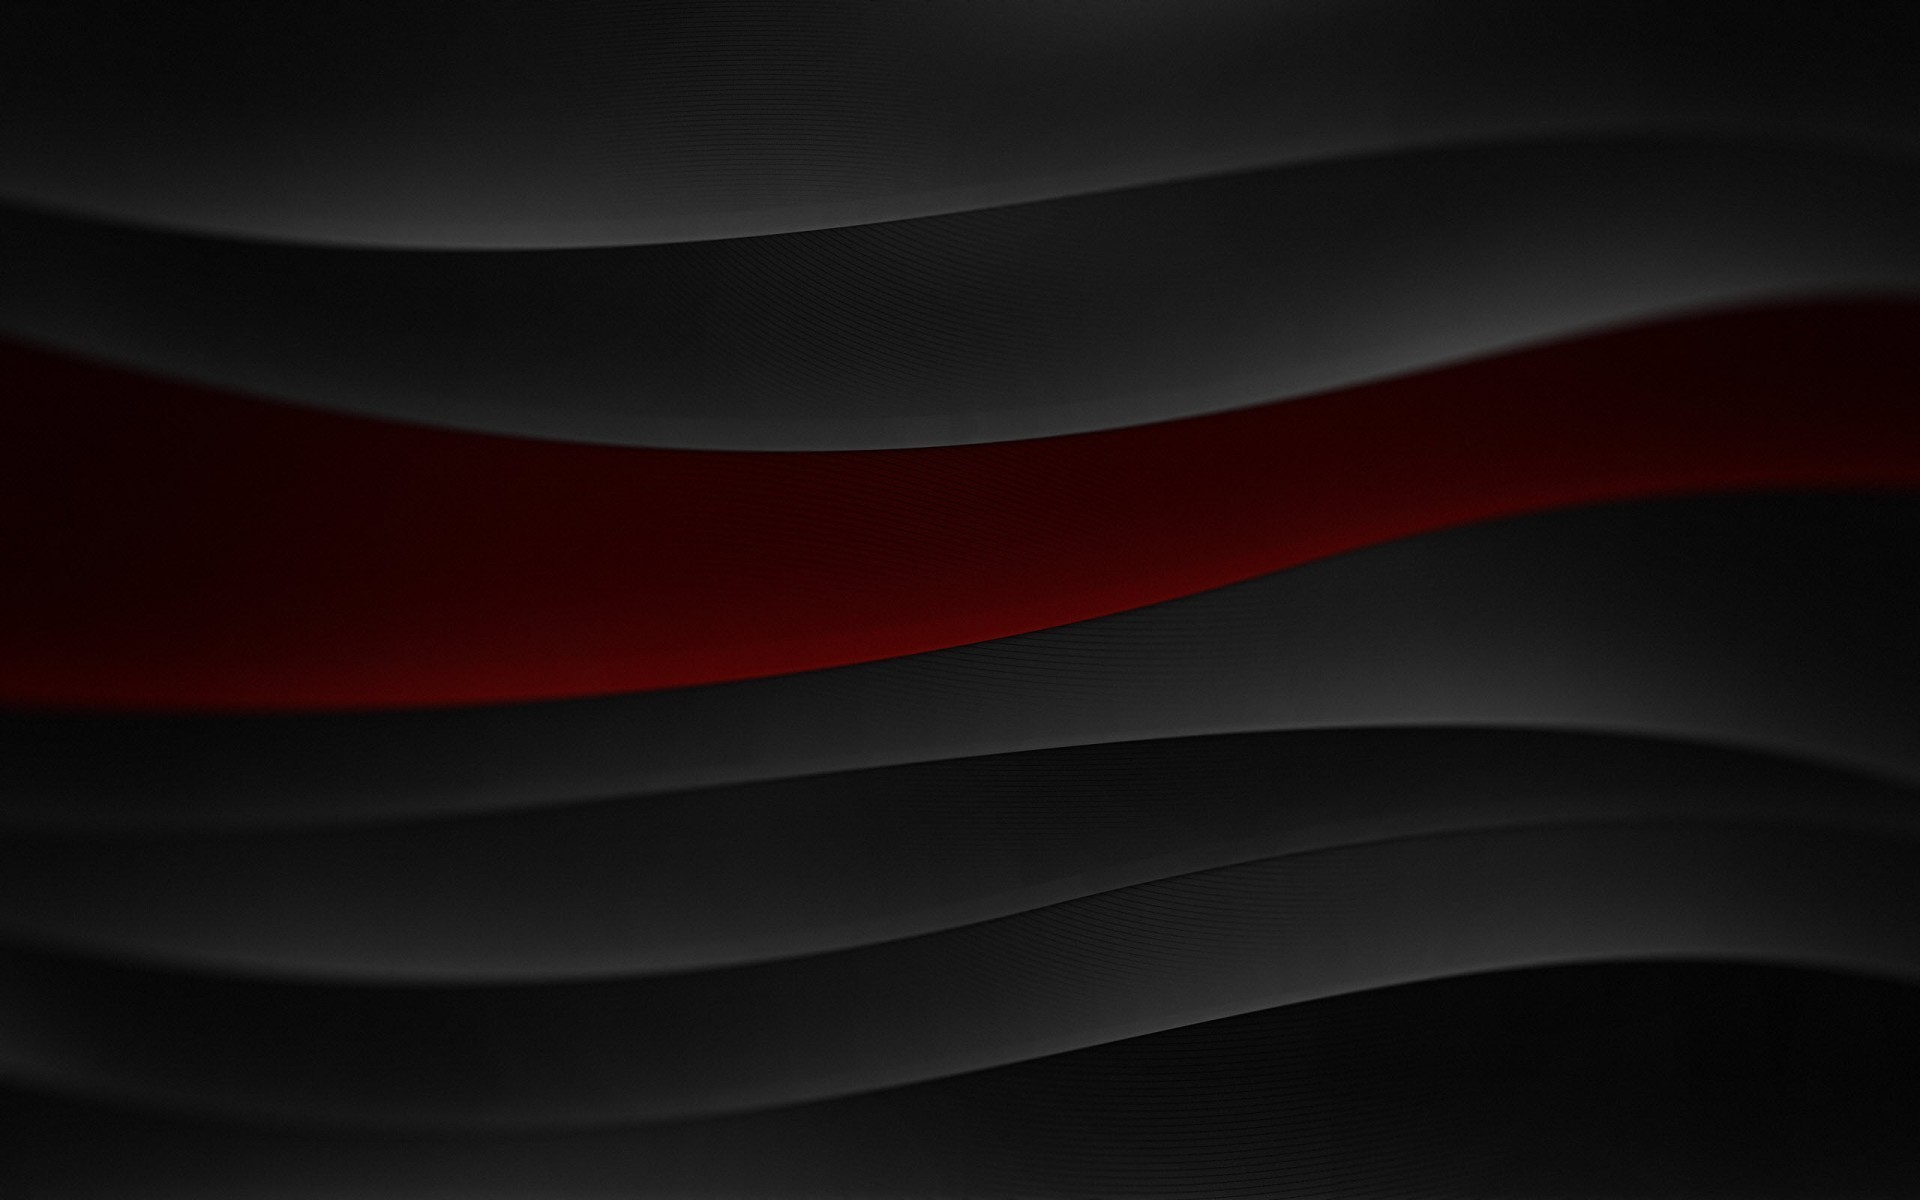 1920x1200 Black-Red-Background-Wallpaper-PIC-WPXH615697